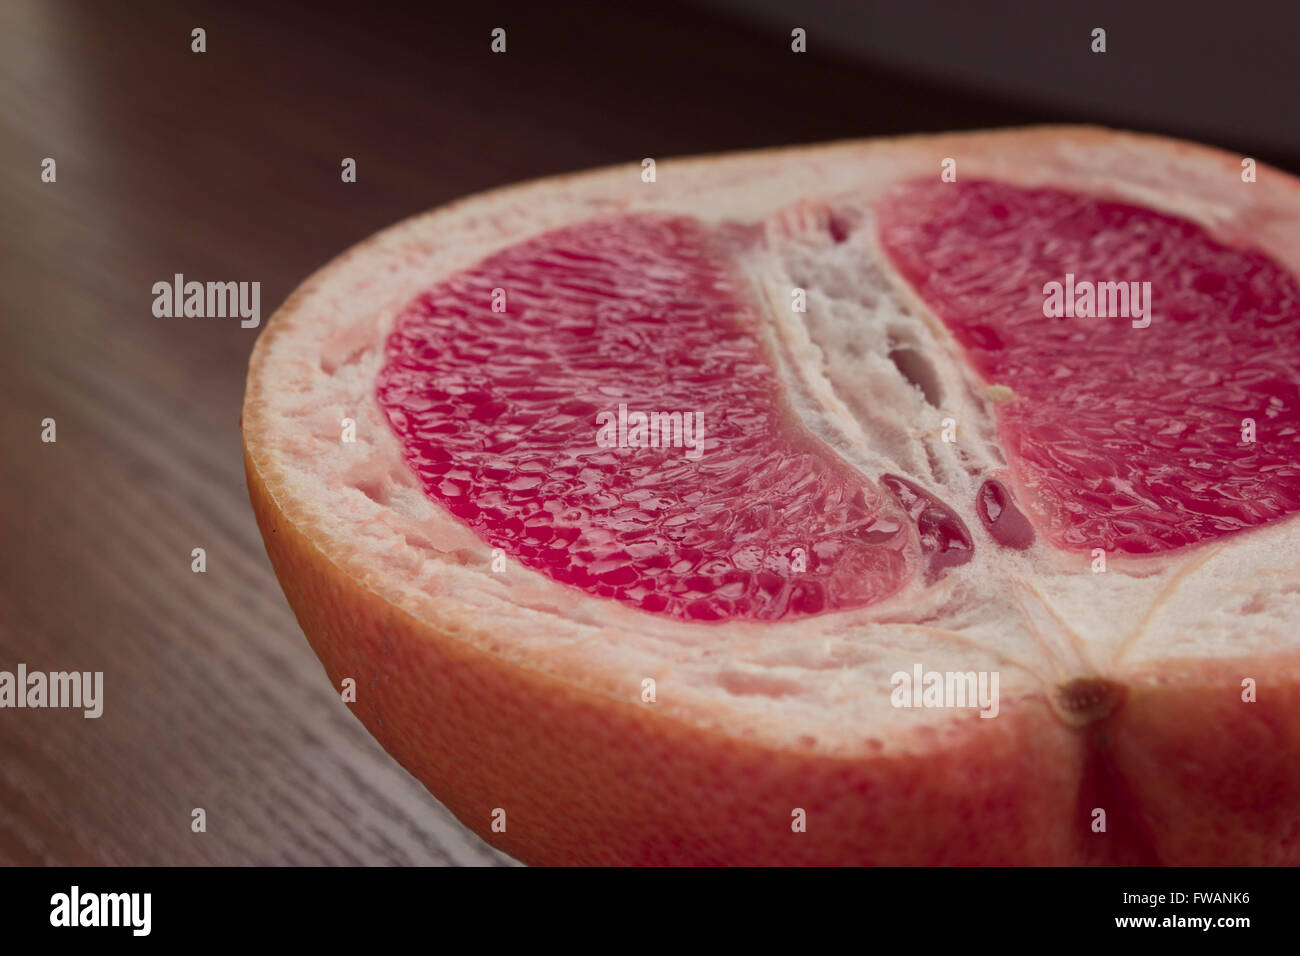 fresh juicy grapefruit on a wooden table - Stock Image